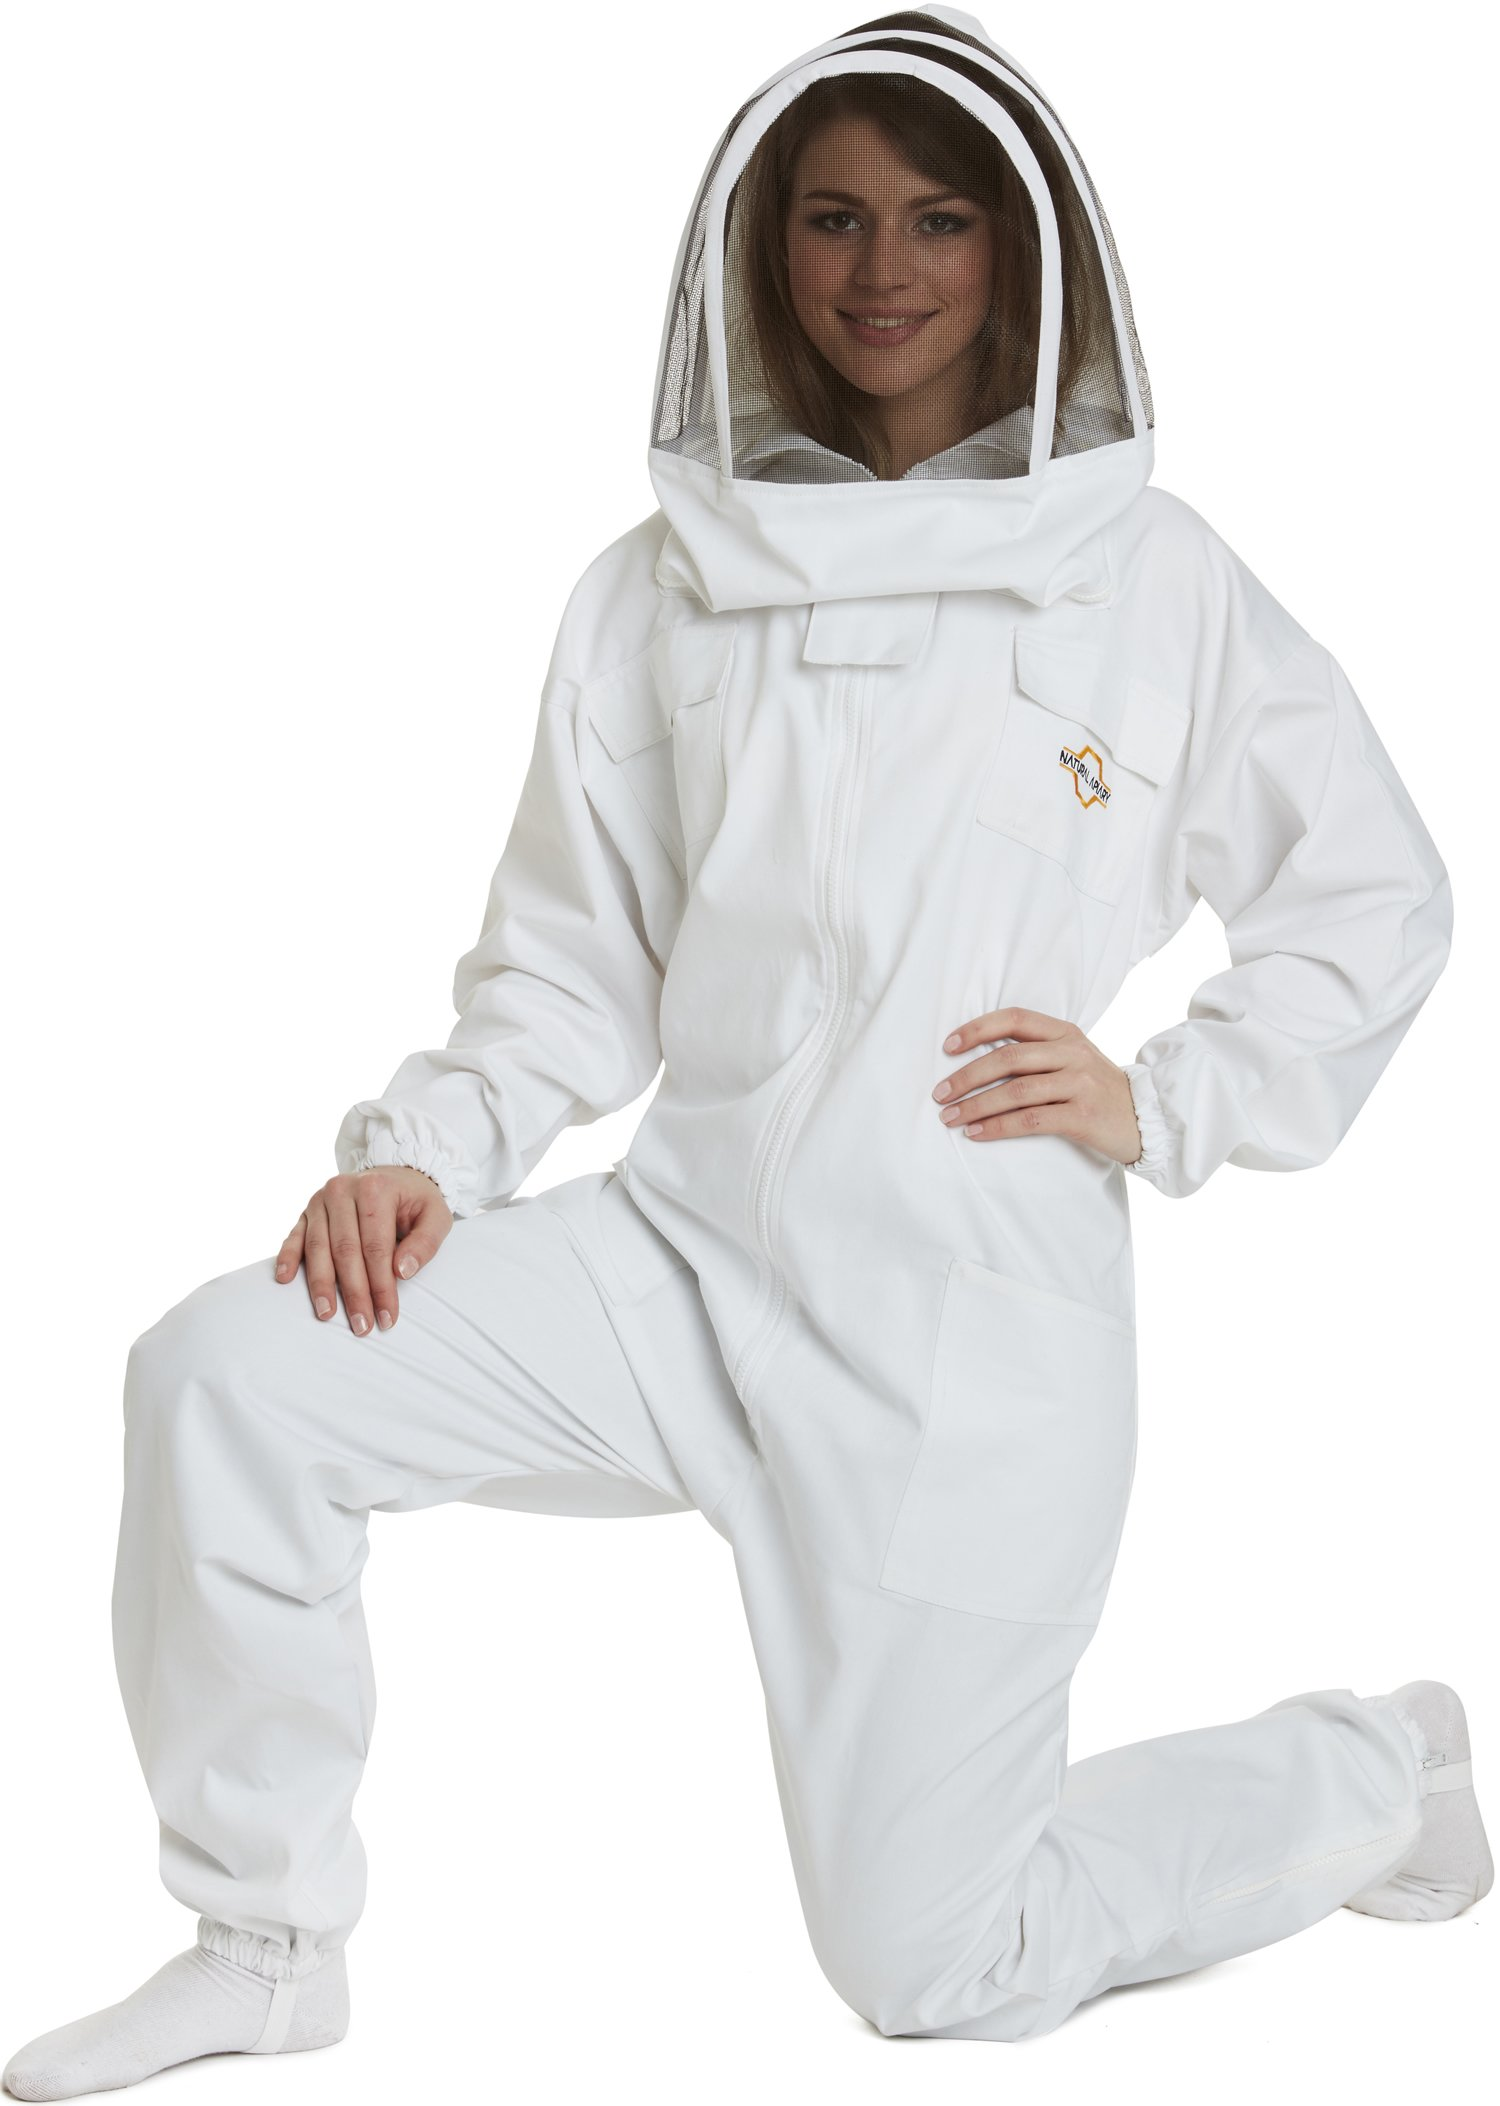 Natural Apiary - Apiarist Beekeeping Suit - (All-in-One) - Fencing Veil - Total Protection for Professional and Beginner Beekeepers - X Large - White by Natural Apiary